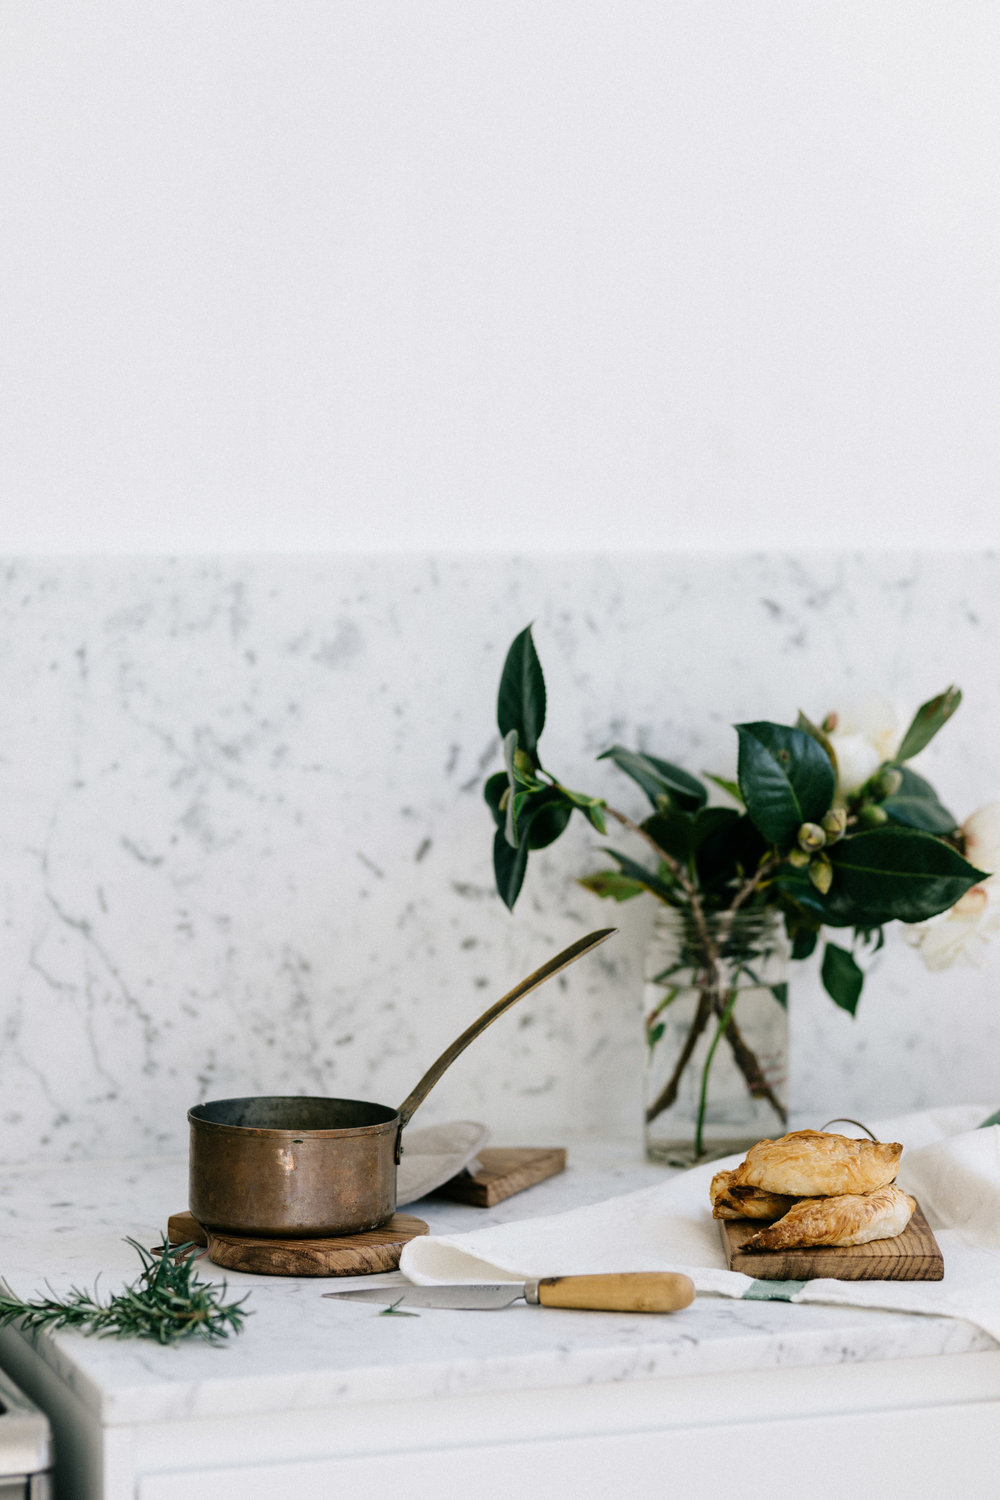 Marnie Hawson, Melbourne lifestyle photographer for Woodfolk